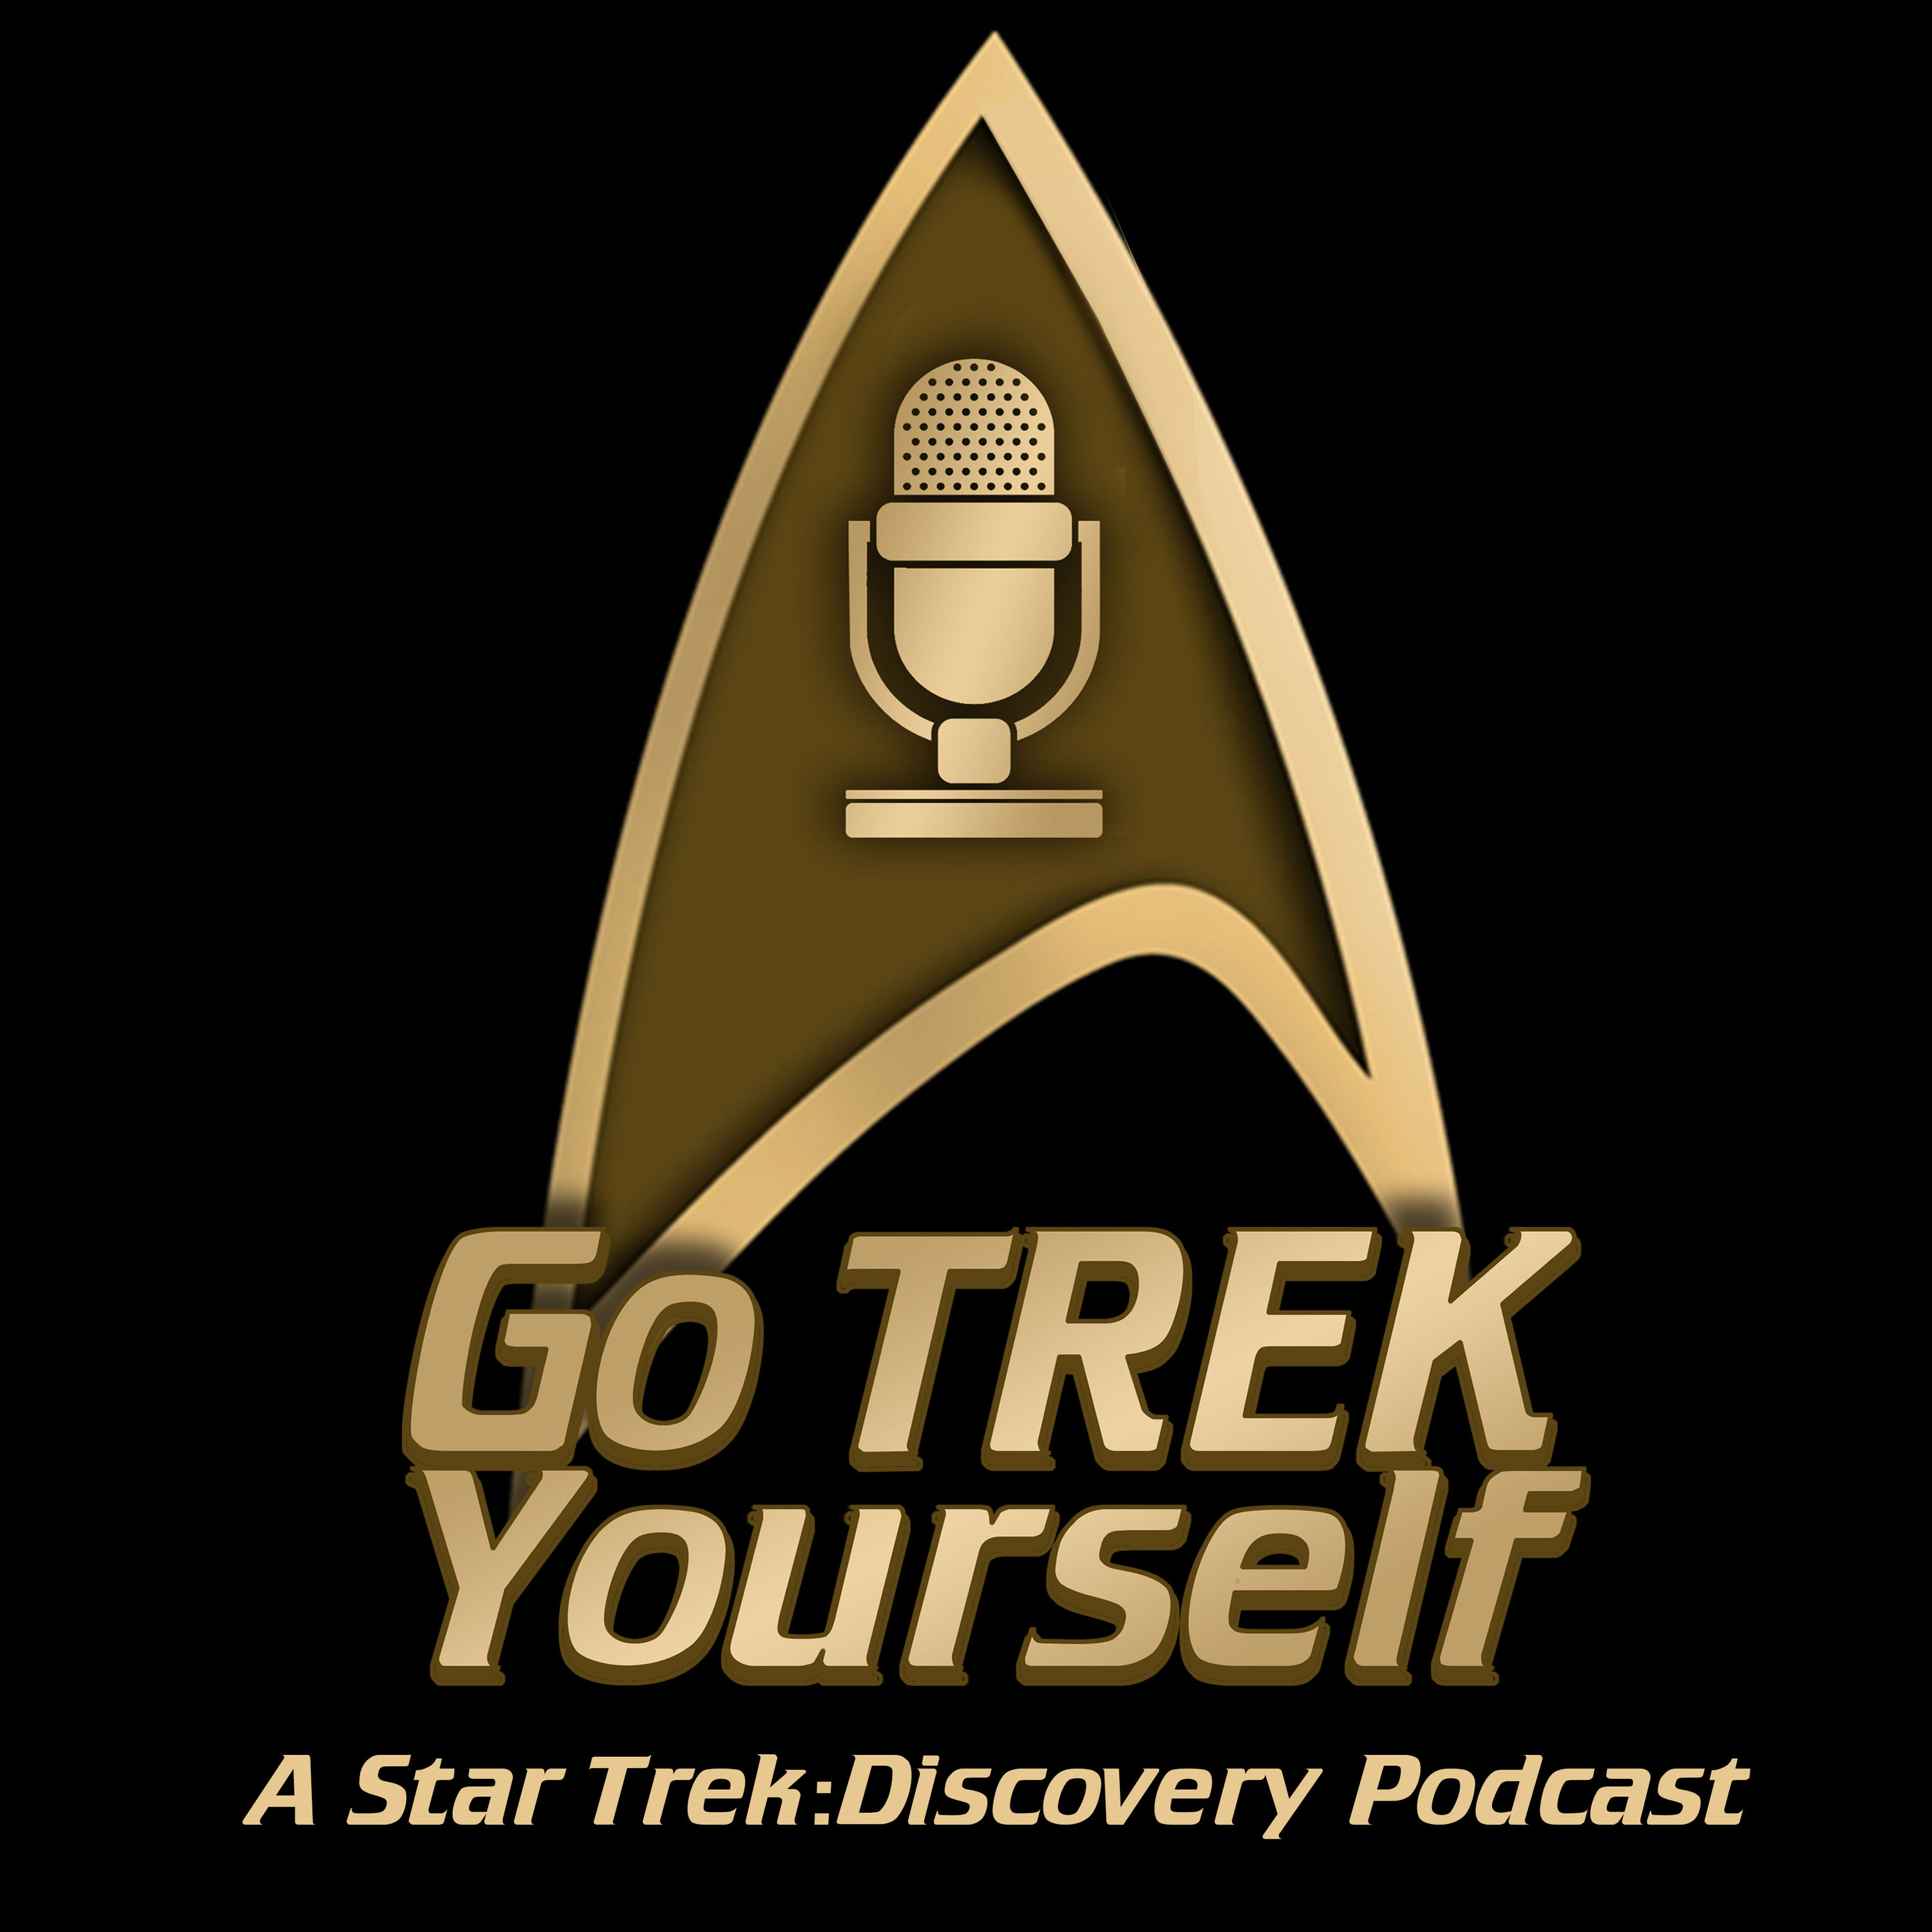 Go Trek Yourself